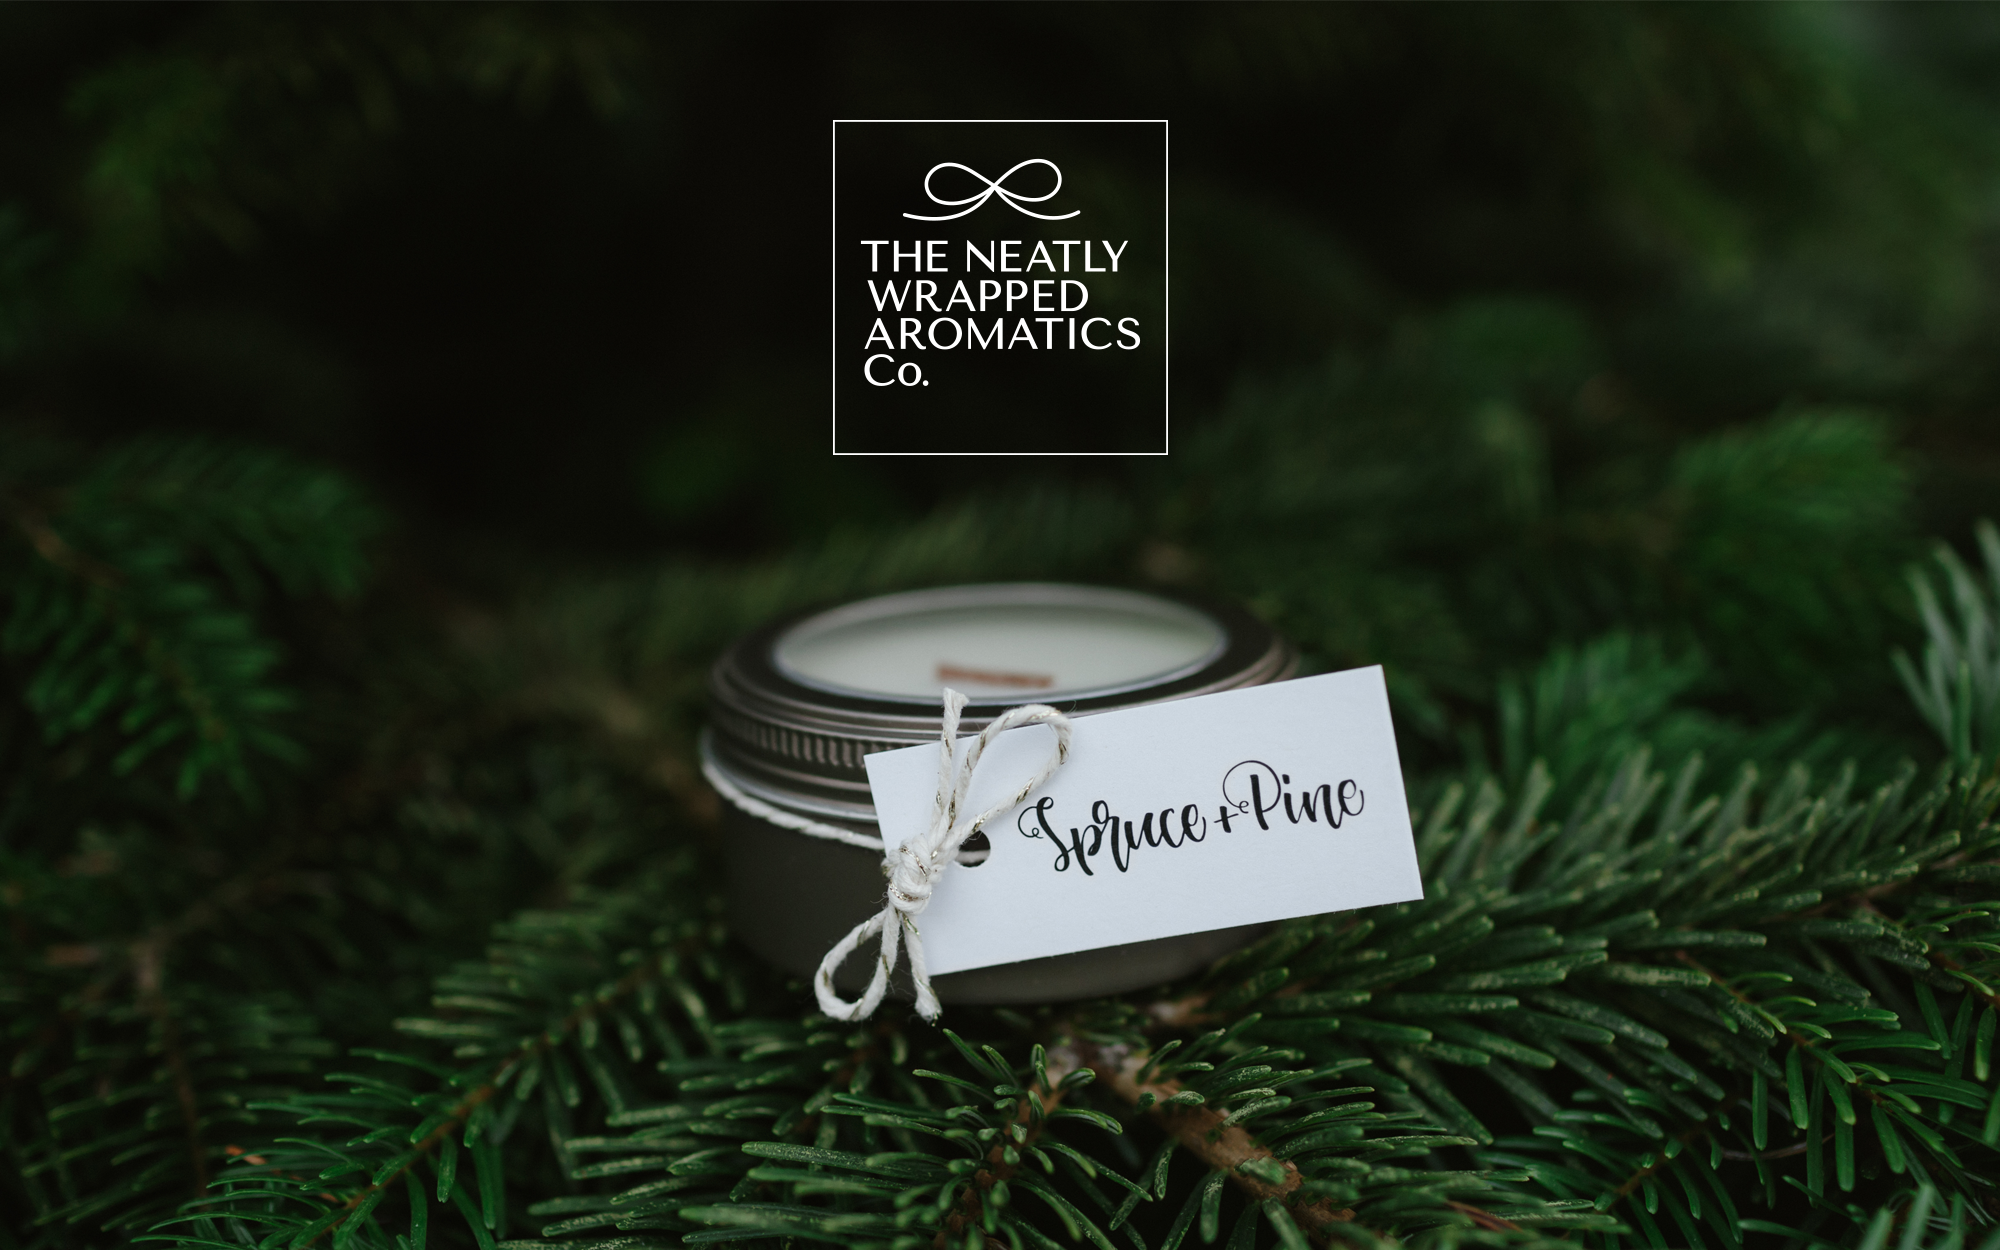 candle-branding-logo-design-glasgow-scotland-marketing-walnut-wasp-neatly-wrapped-001.png